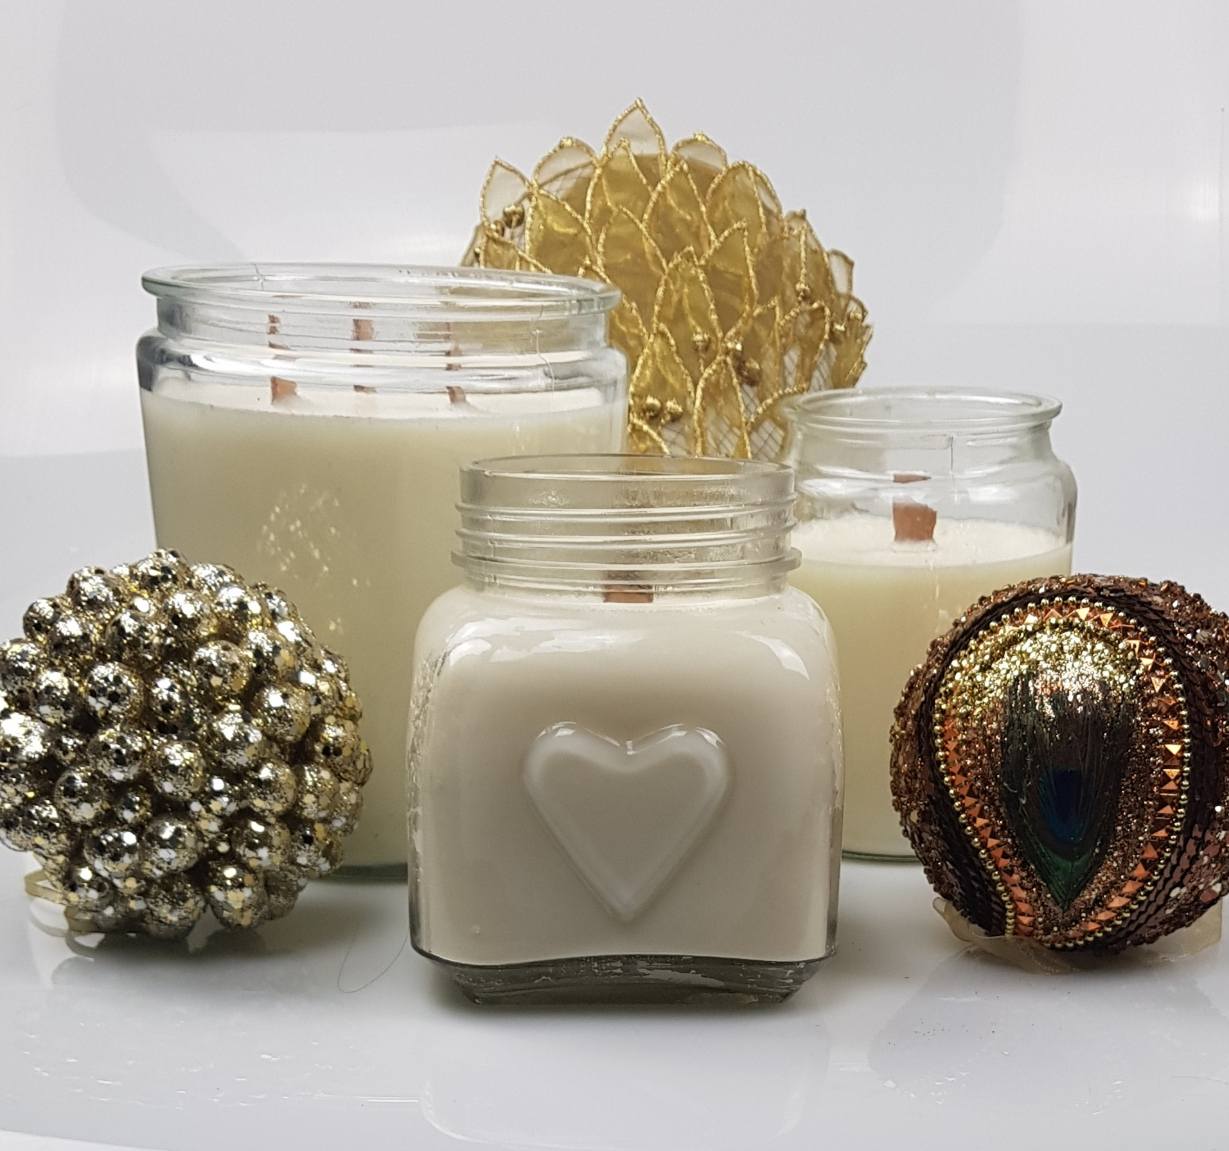 refill candles, 3 candles refilled how to make candles